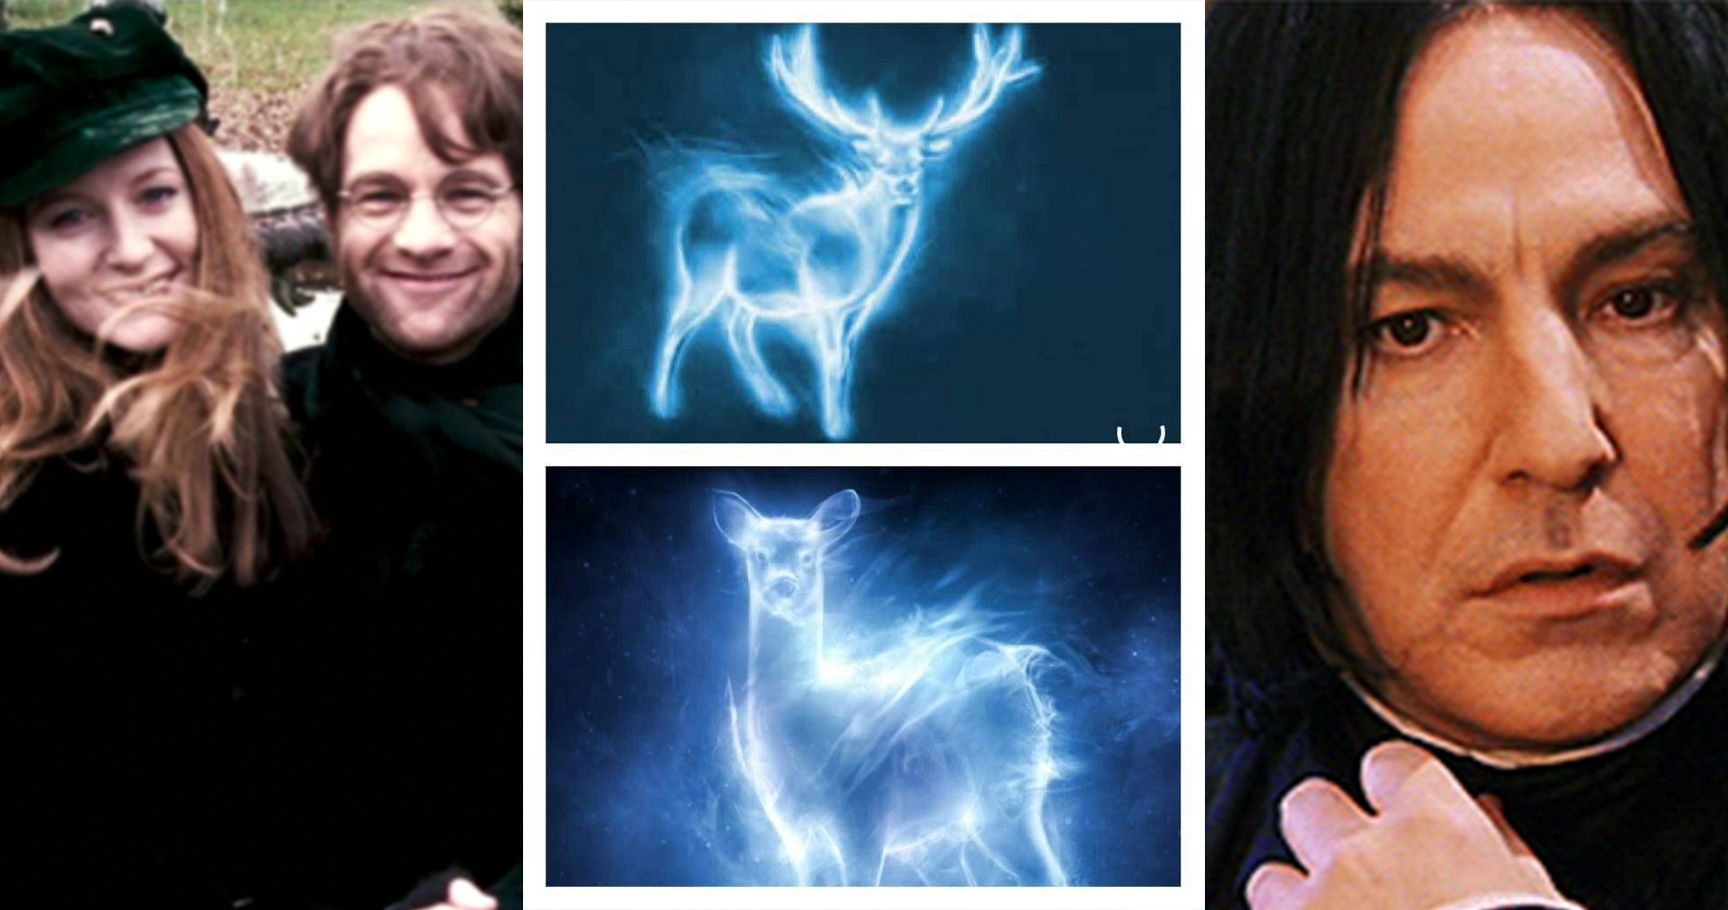 The Potters: 15 Things Only Diehard Fans Know About James & Lily